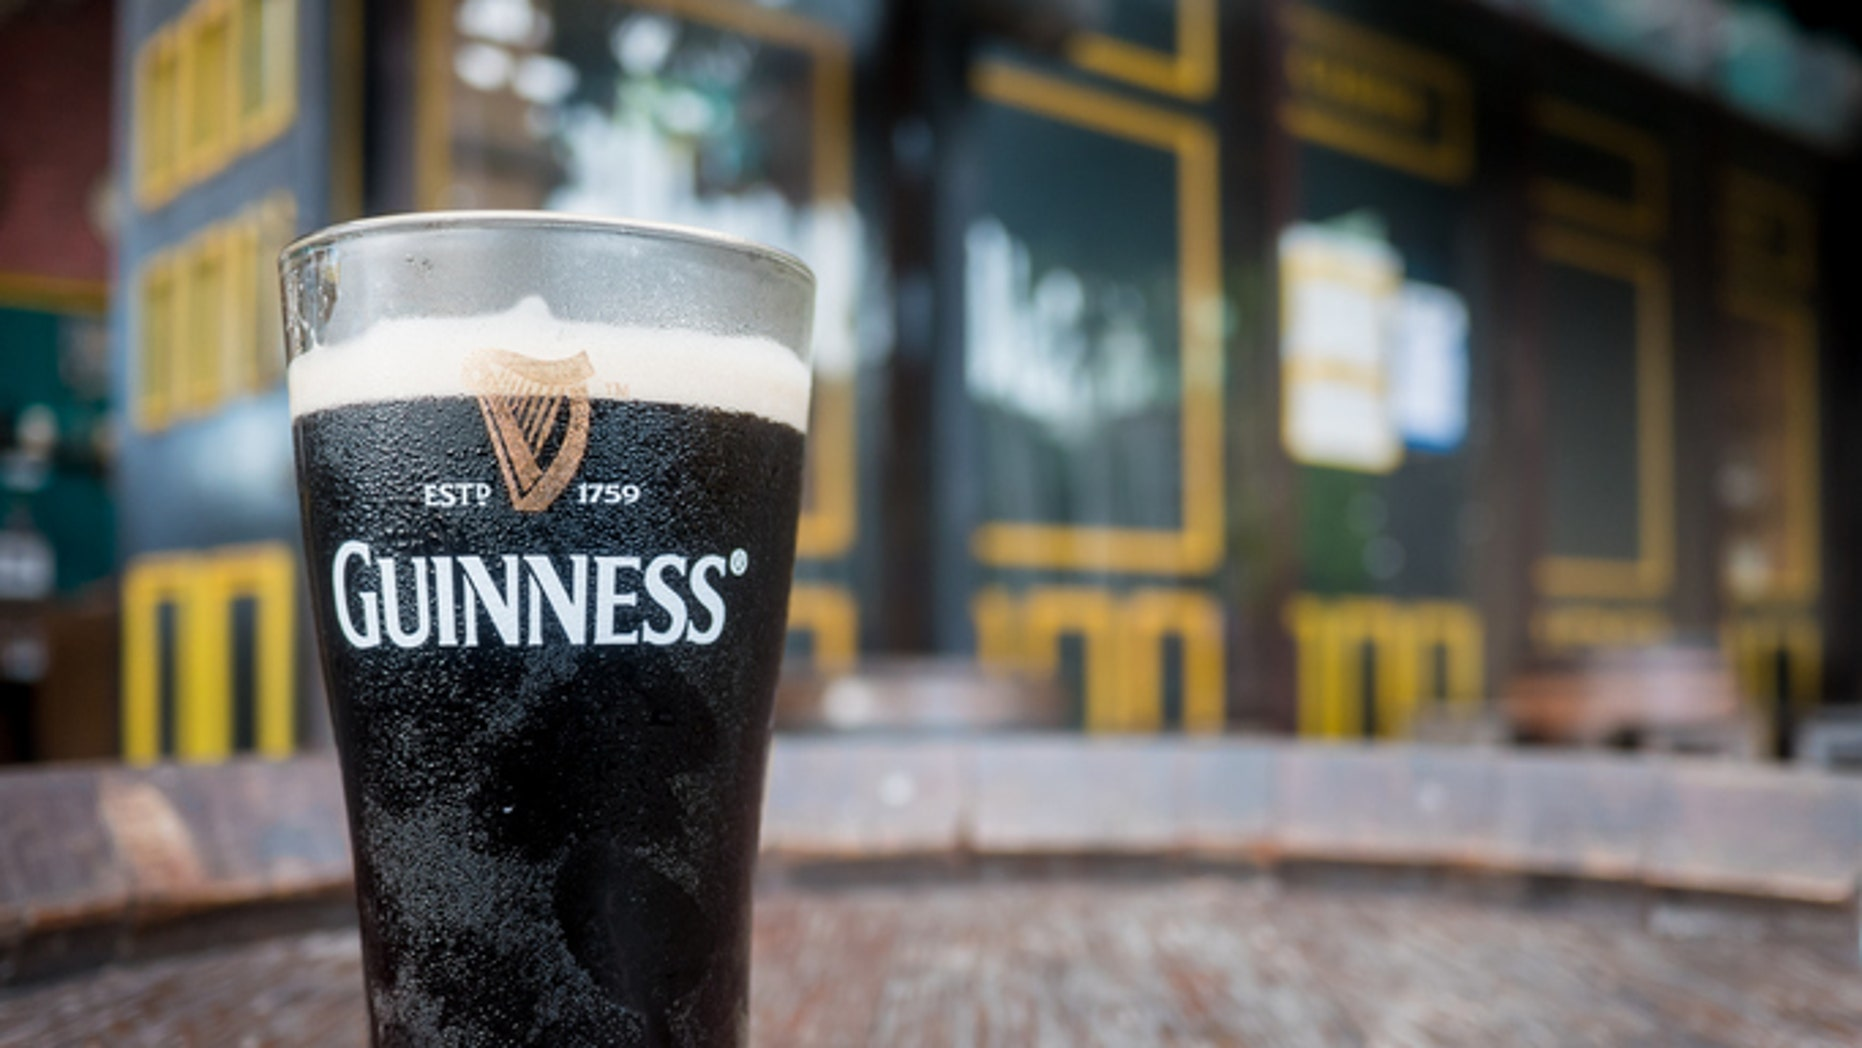 Pattaya, Thailand - September 18, 2016: Thailand, Pattaya : Pint of beer served at Guinness Brewery on September 18, 2016 in Pattaya.